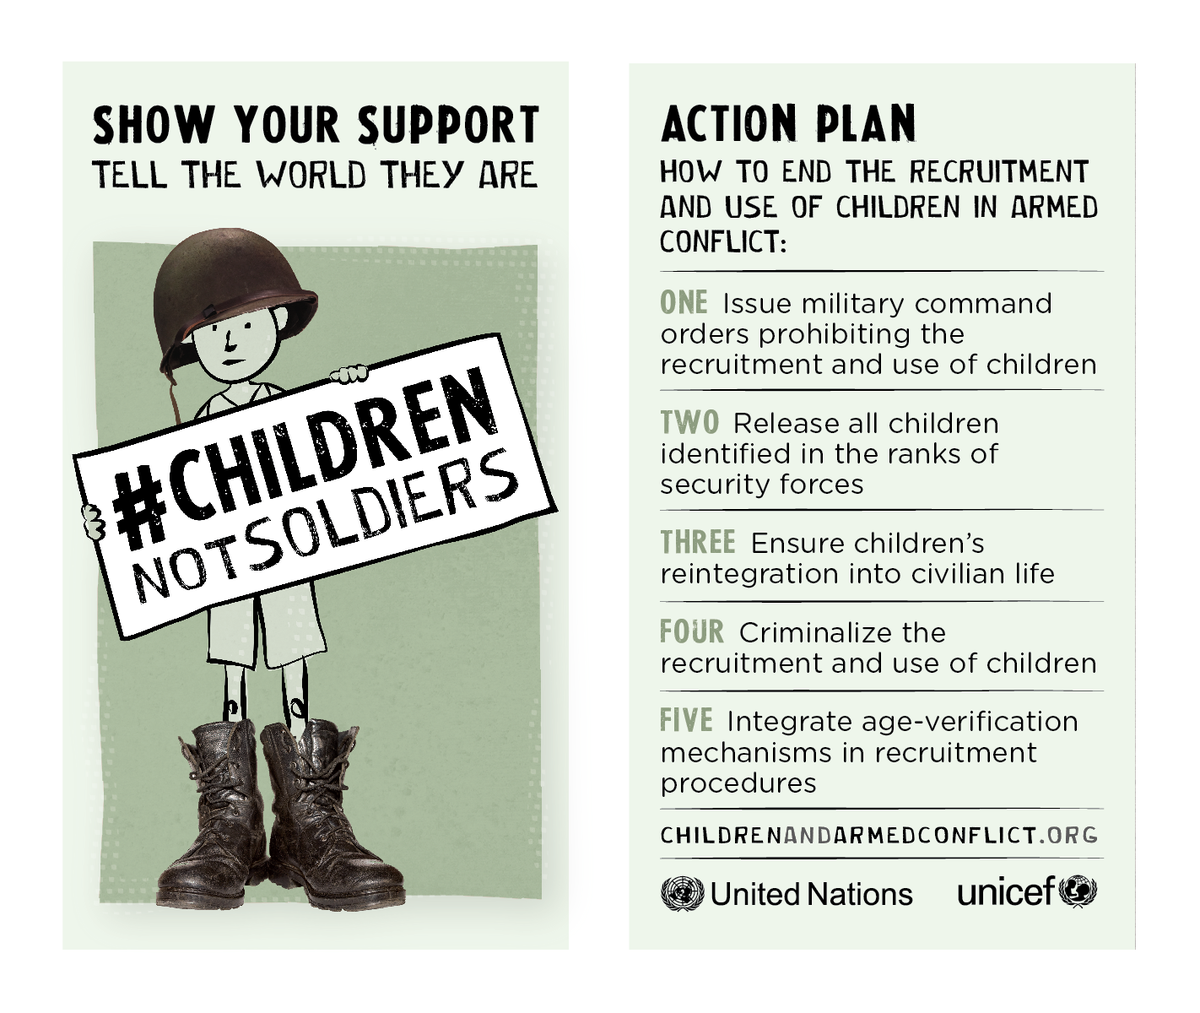 After one year, we still need your help to end recruitment of children, http://t.co/uQiSsmgi9B #ChildrenNotSoldiers http://t.co/9b3kPWrPpW